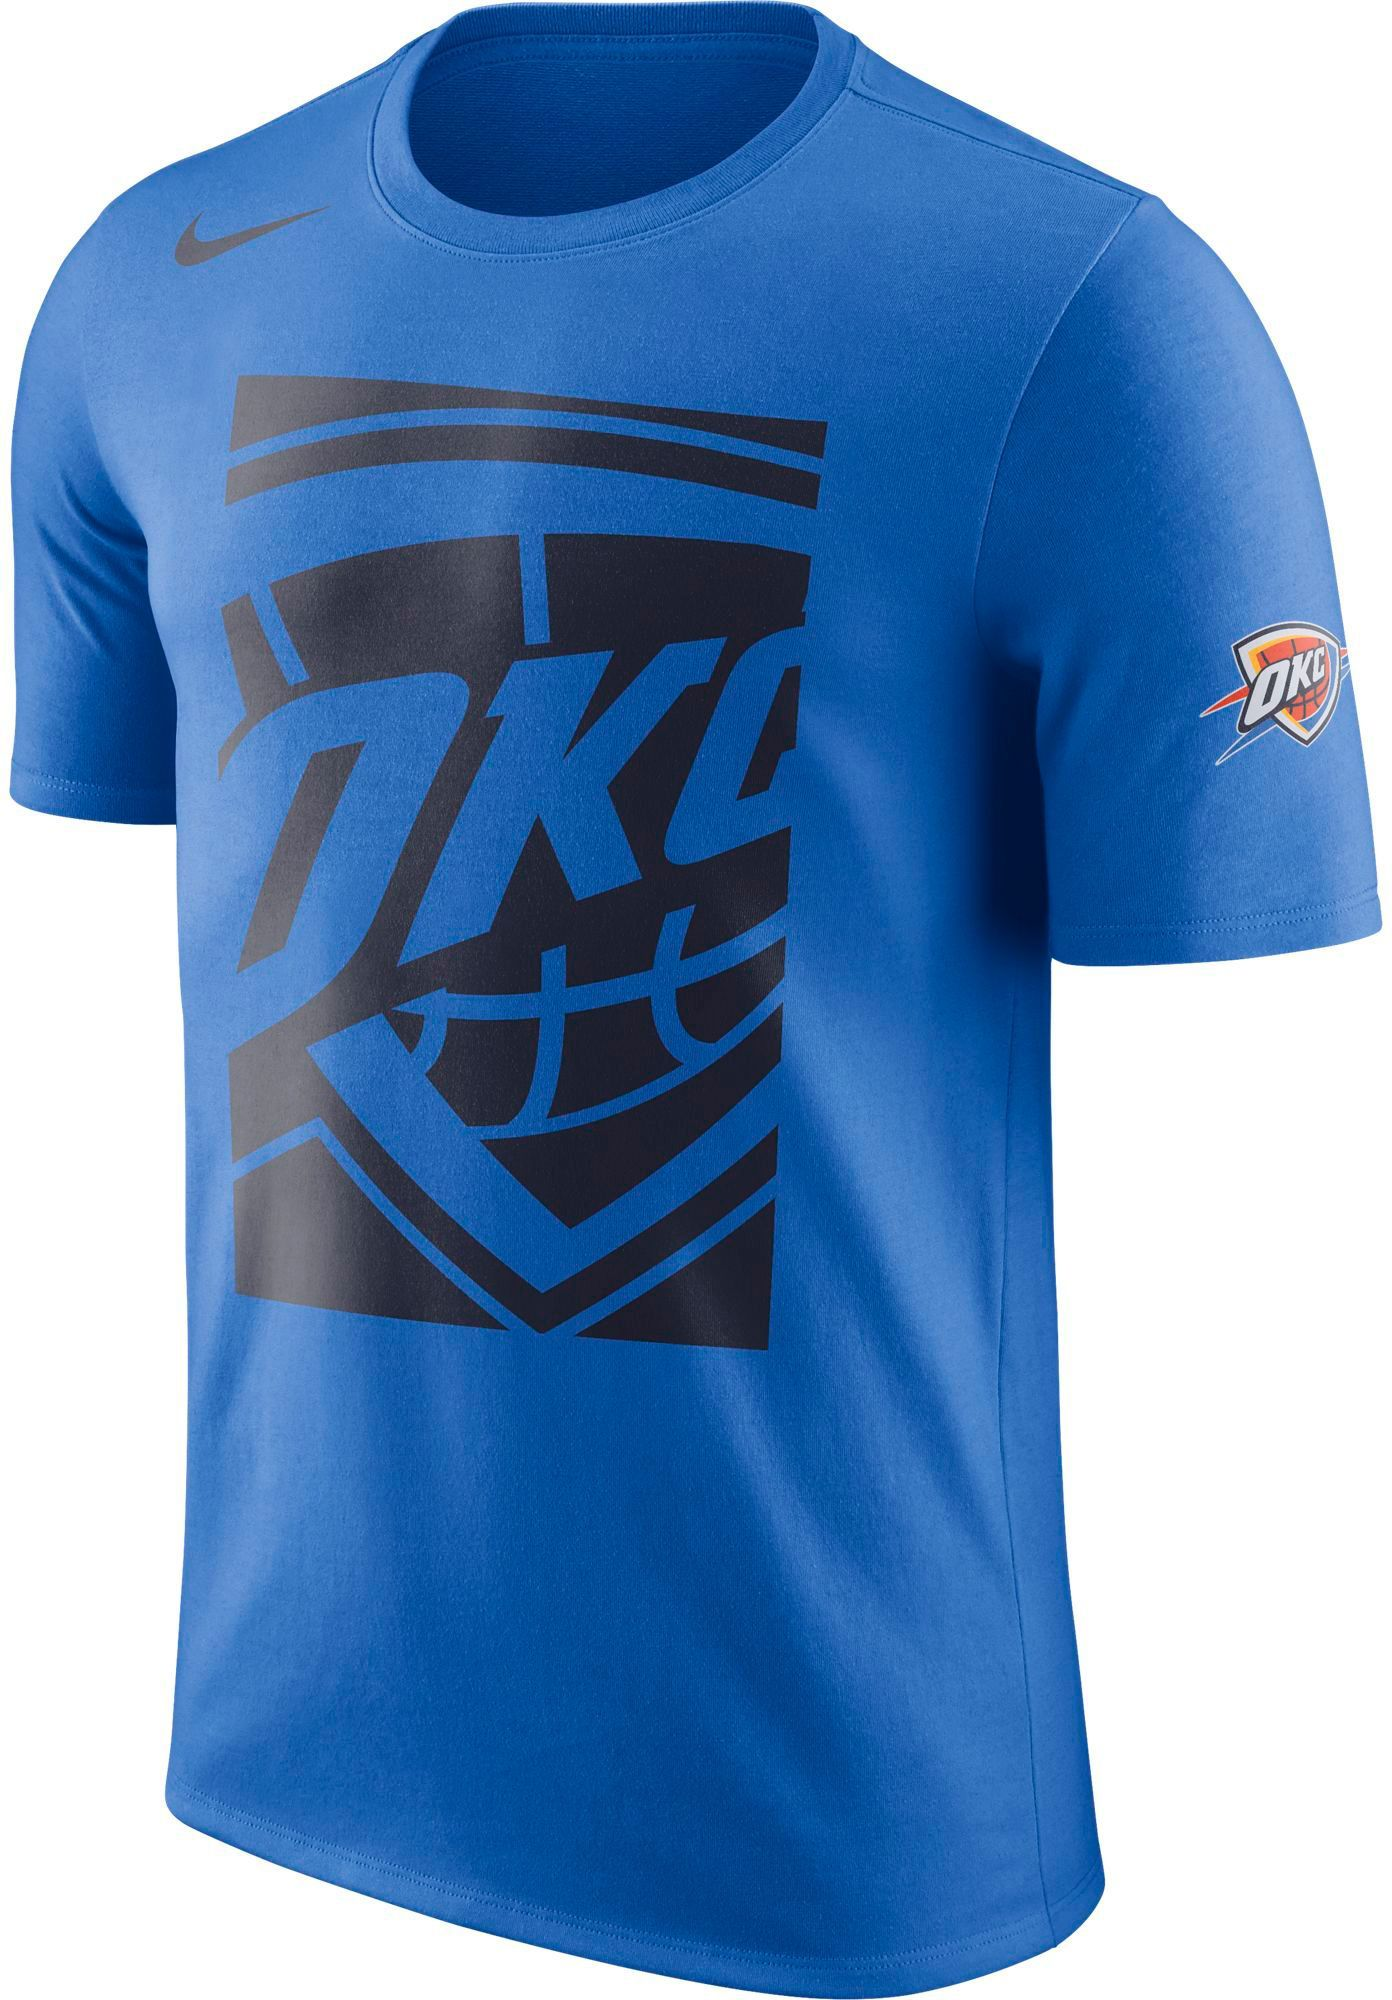 3caf05577a7 Nike Men s Oklahoma City Thunder Dri-FIT Blue T-Shirt